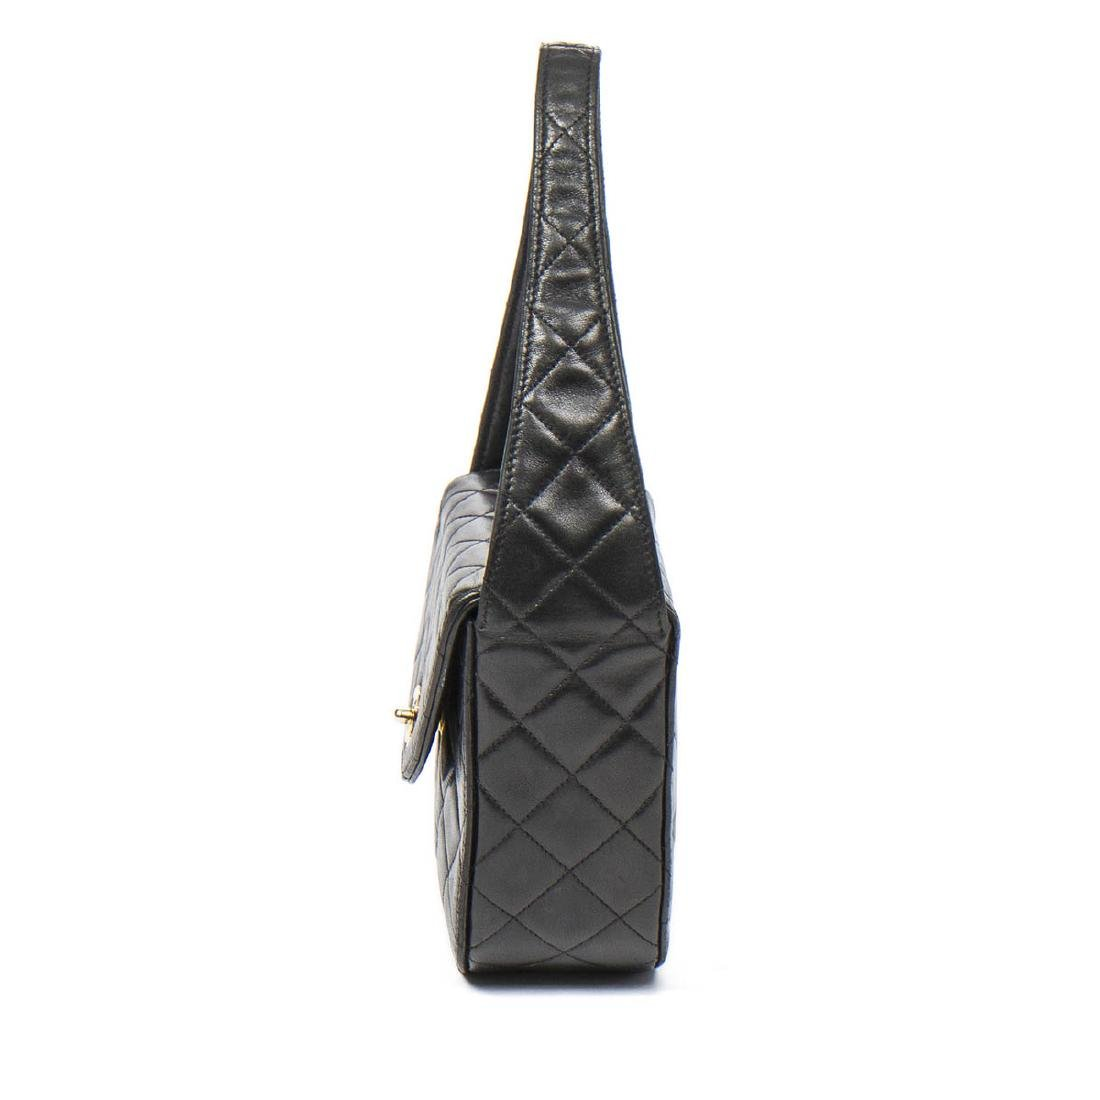 Chanel Make up Hand Bag in Black Quilted Leather - 3